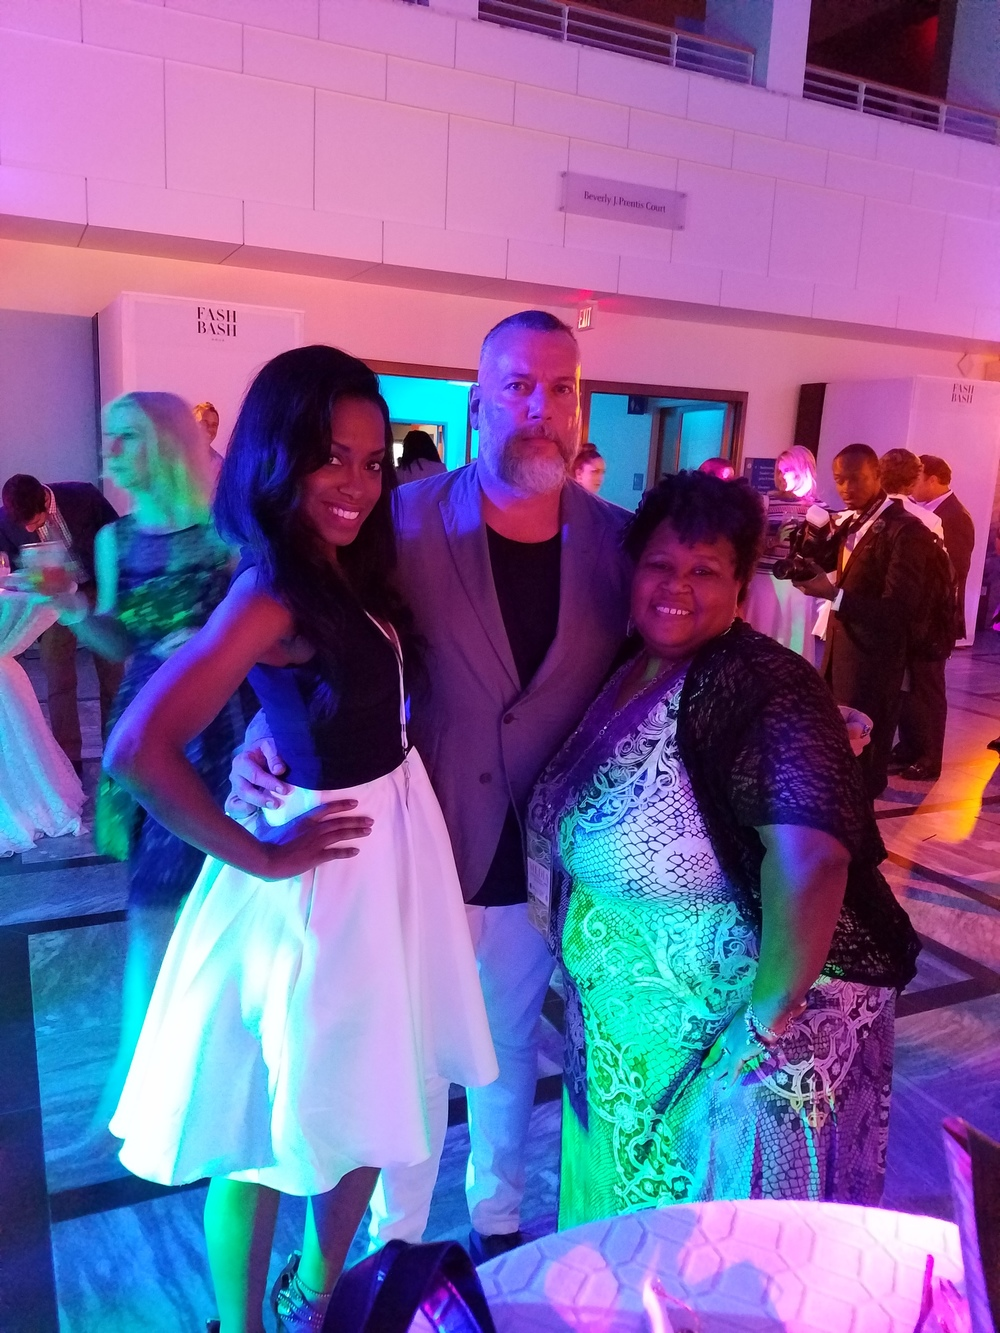 Member of Fashion Group Int. (FGI) Latrice Delgado-Macon, Jeff Newsom and Lisa Benedict